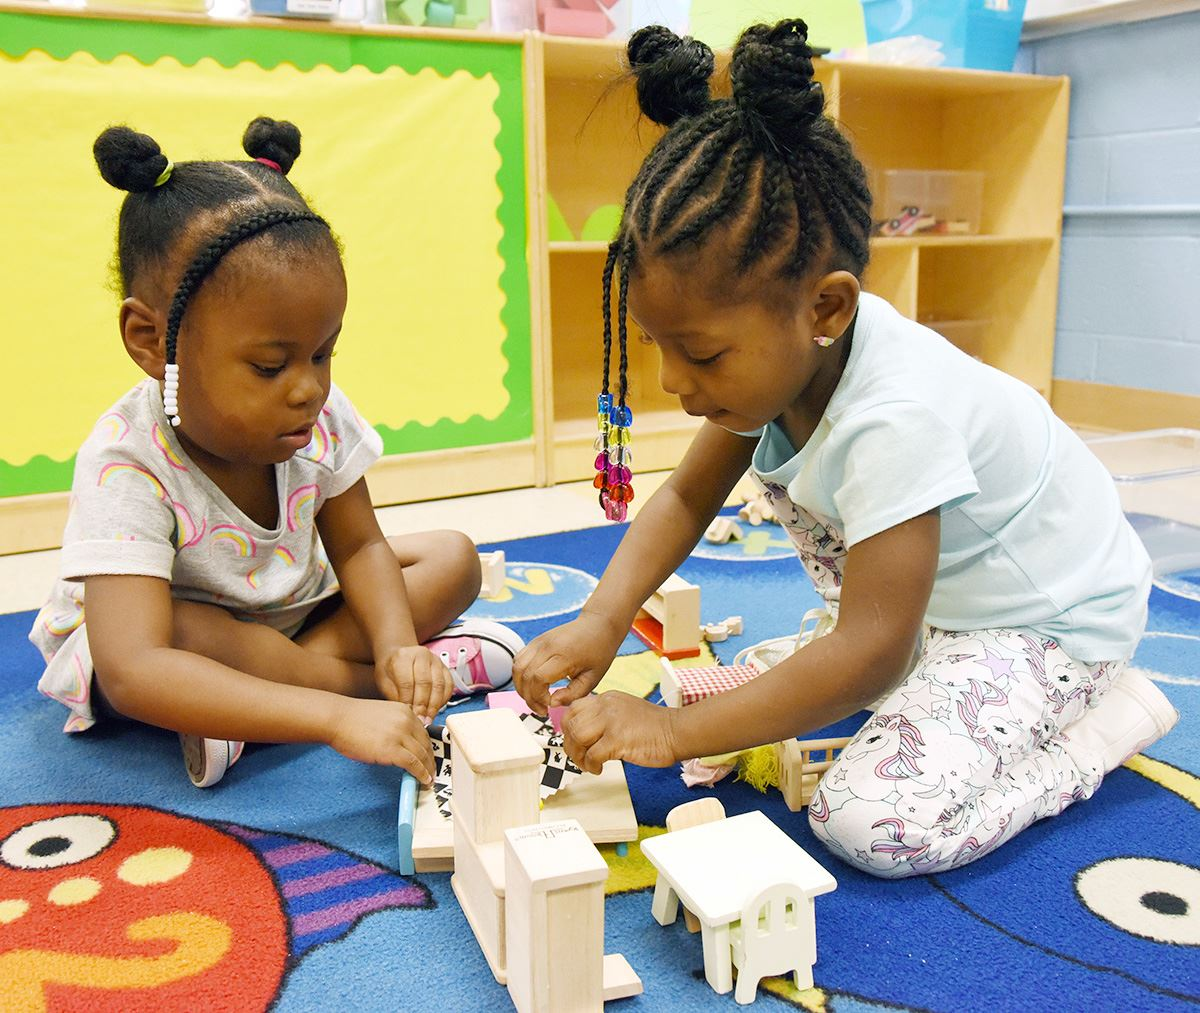 Two 4-year-old African American girls play with blocks on the floor.